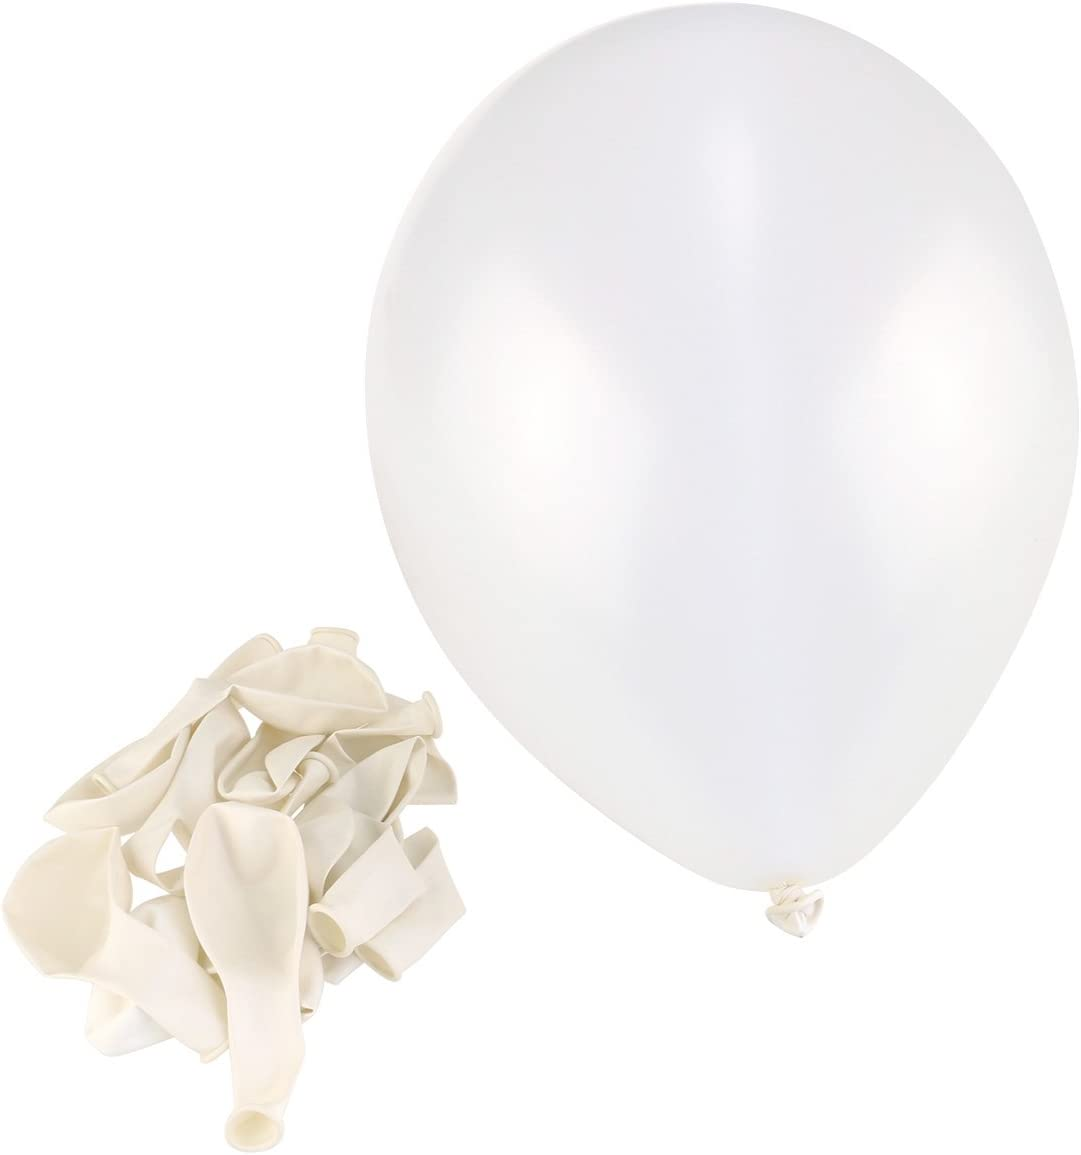 NUOLUX Latex Balloons,12 inch Red White Blue Balloons for Party,100pcs